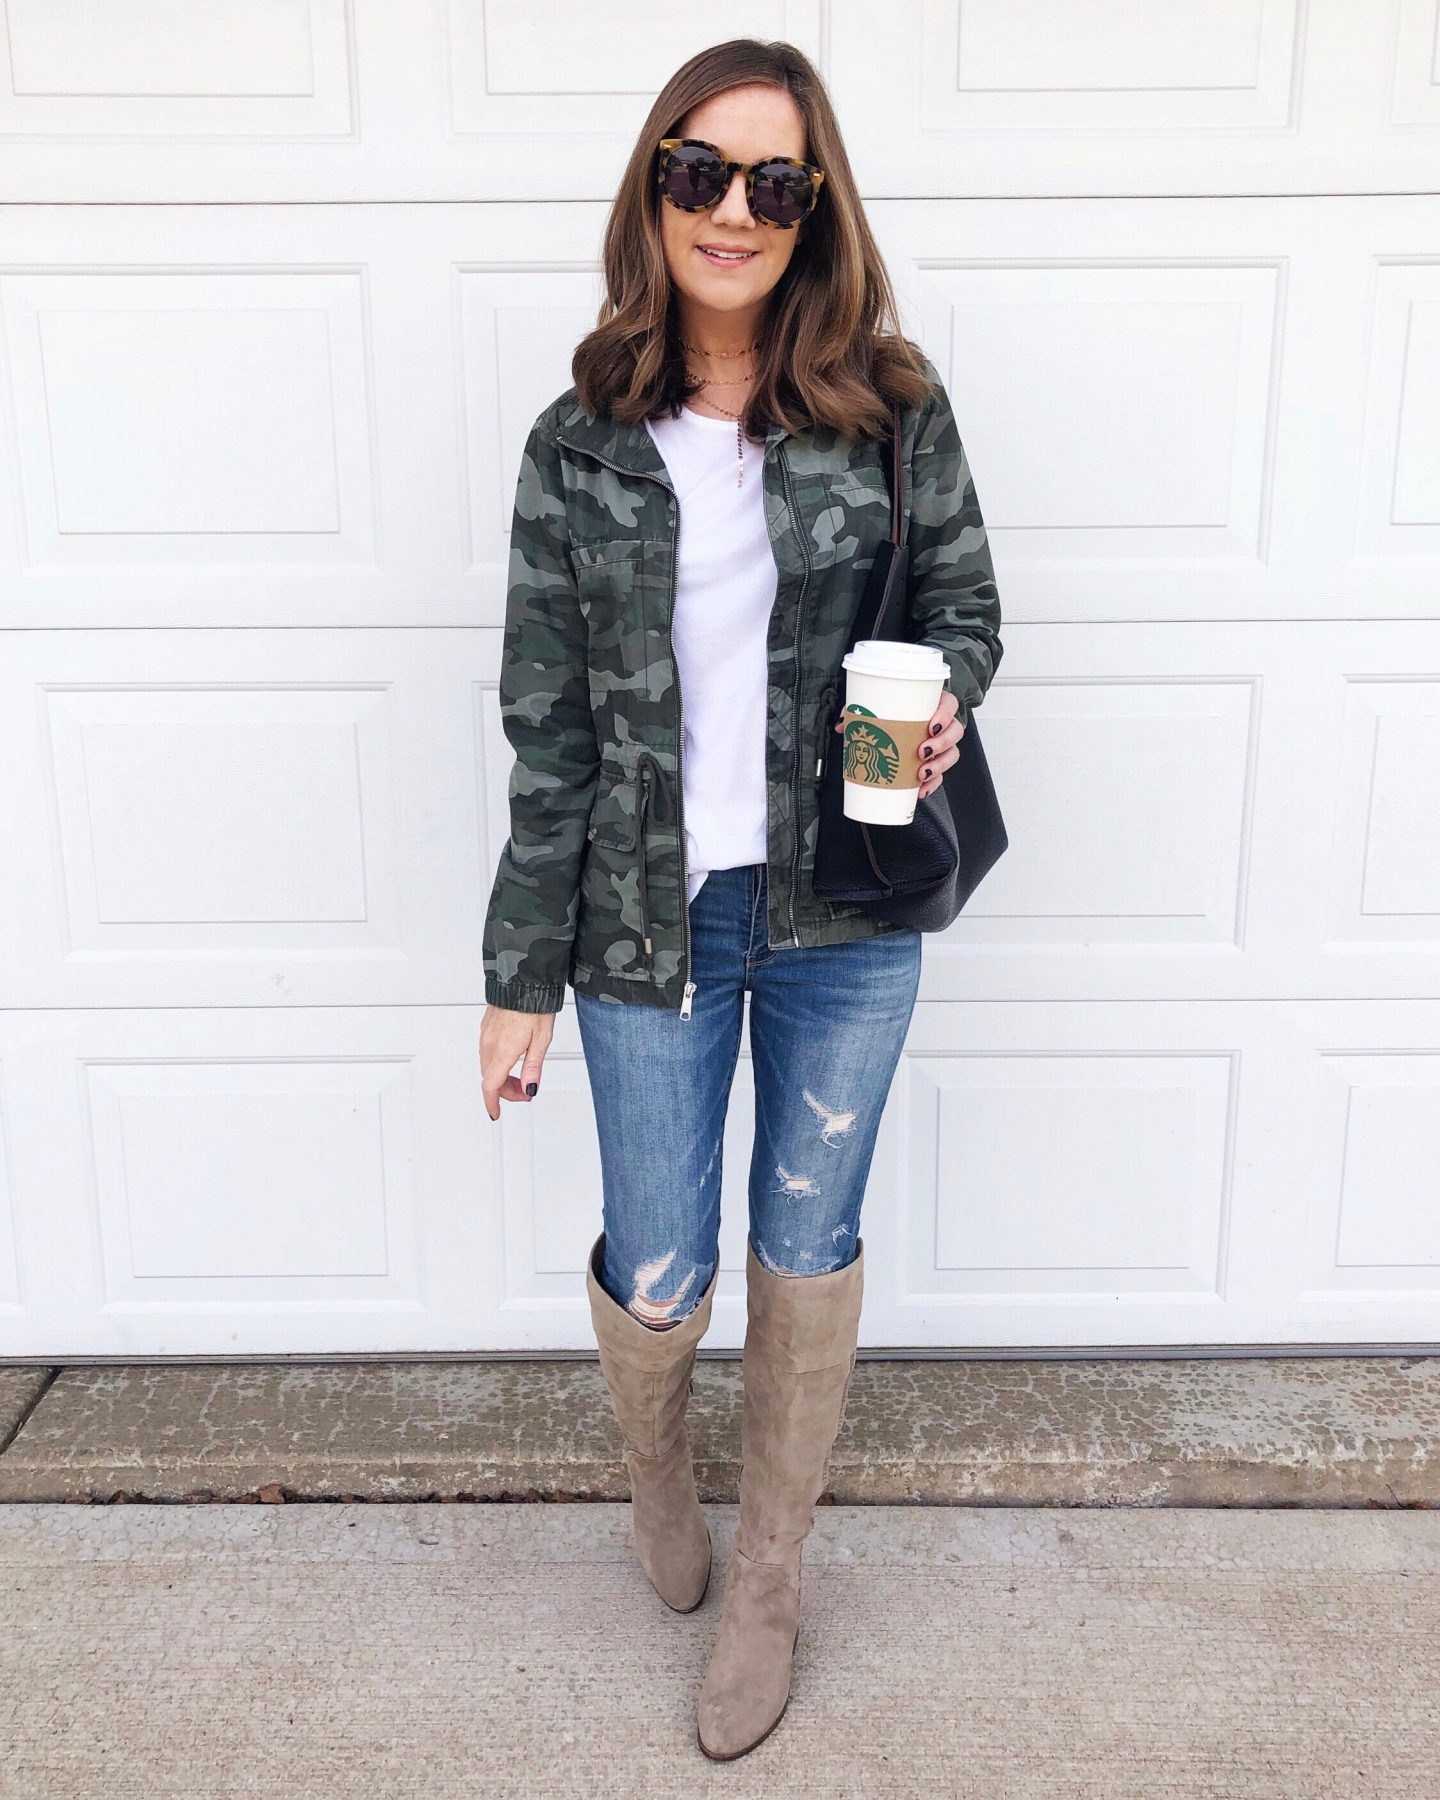 5 ways to style the camo field jacket, Old Navy Camo Field jacket, camouflage jacket, camo cargo jacket, casual outfit, mom style